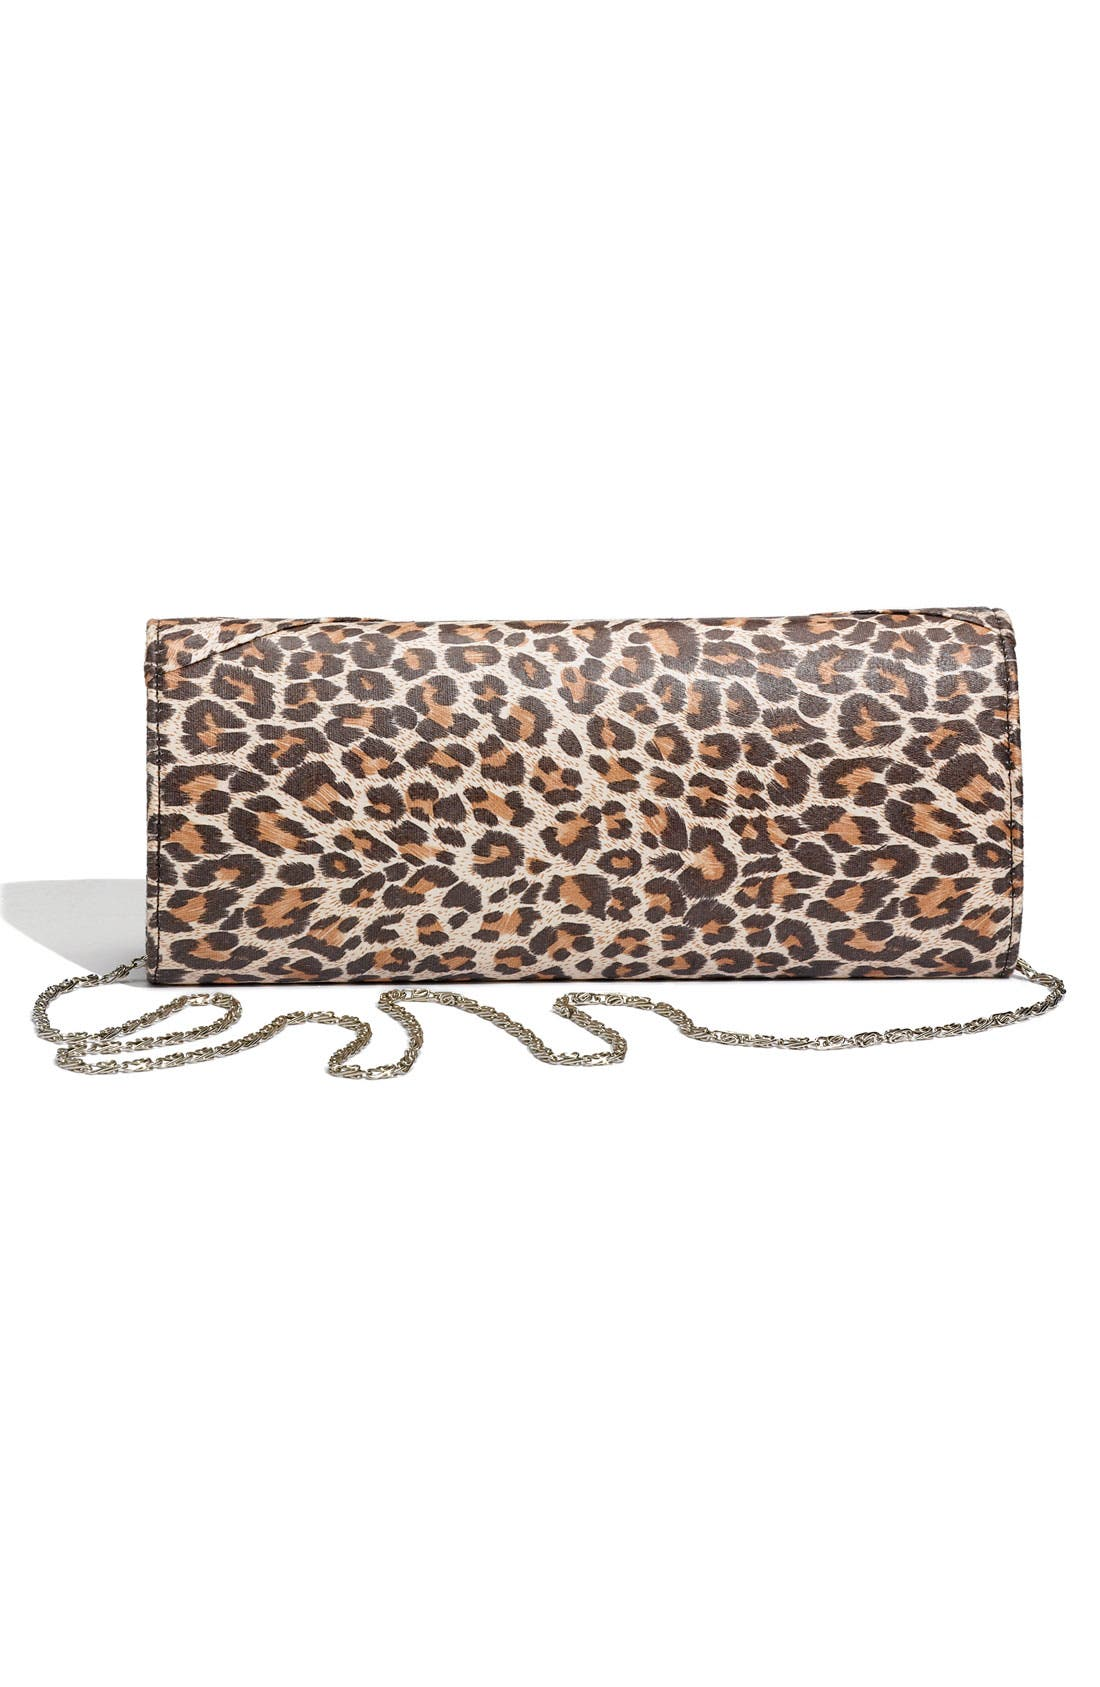 Alternate Image 3  - Top Choice Leopard Print Embellished Bow Clutch